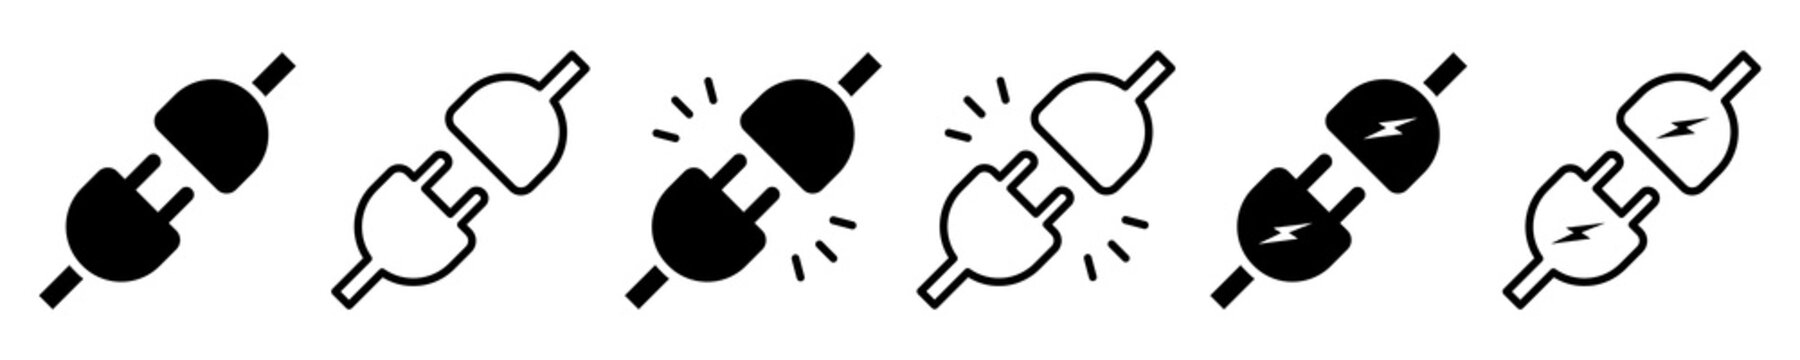 Set of electric plug icons. Connection, socket with a plug, icons. Included or unplugged electric plug with socket. Vector illustration.